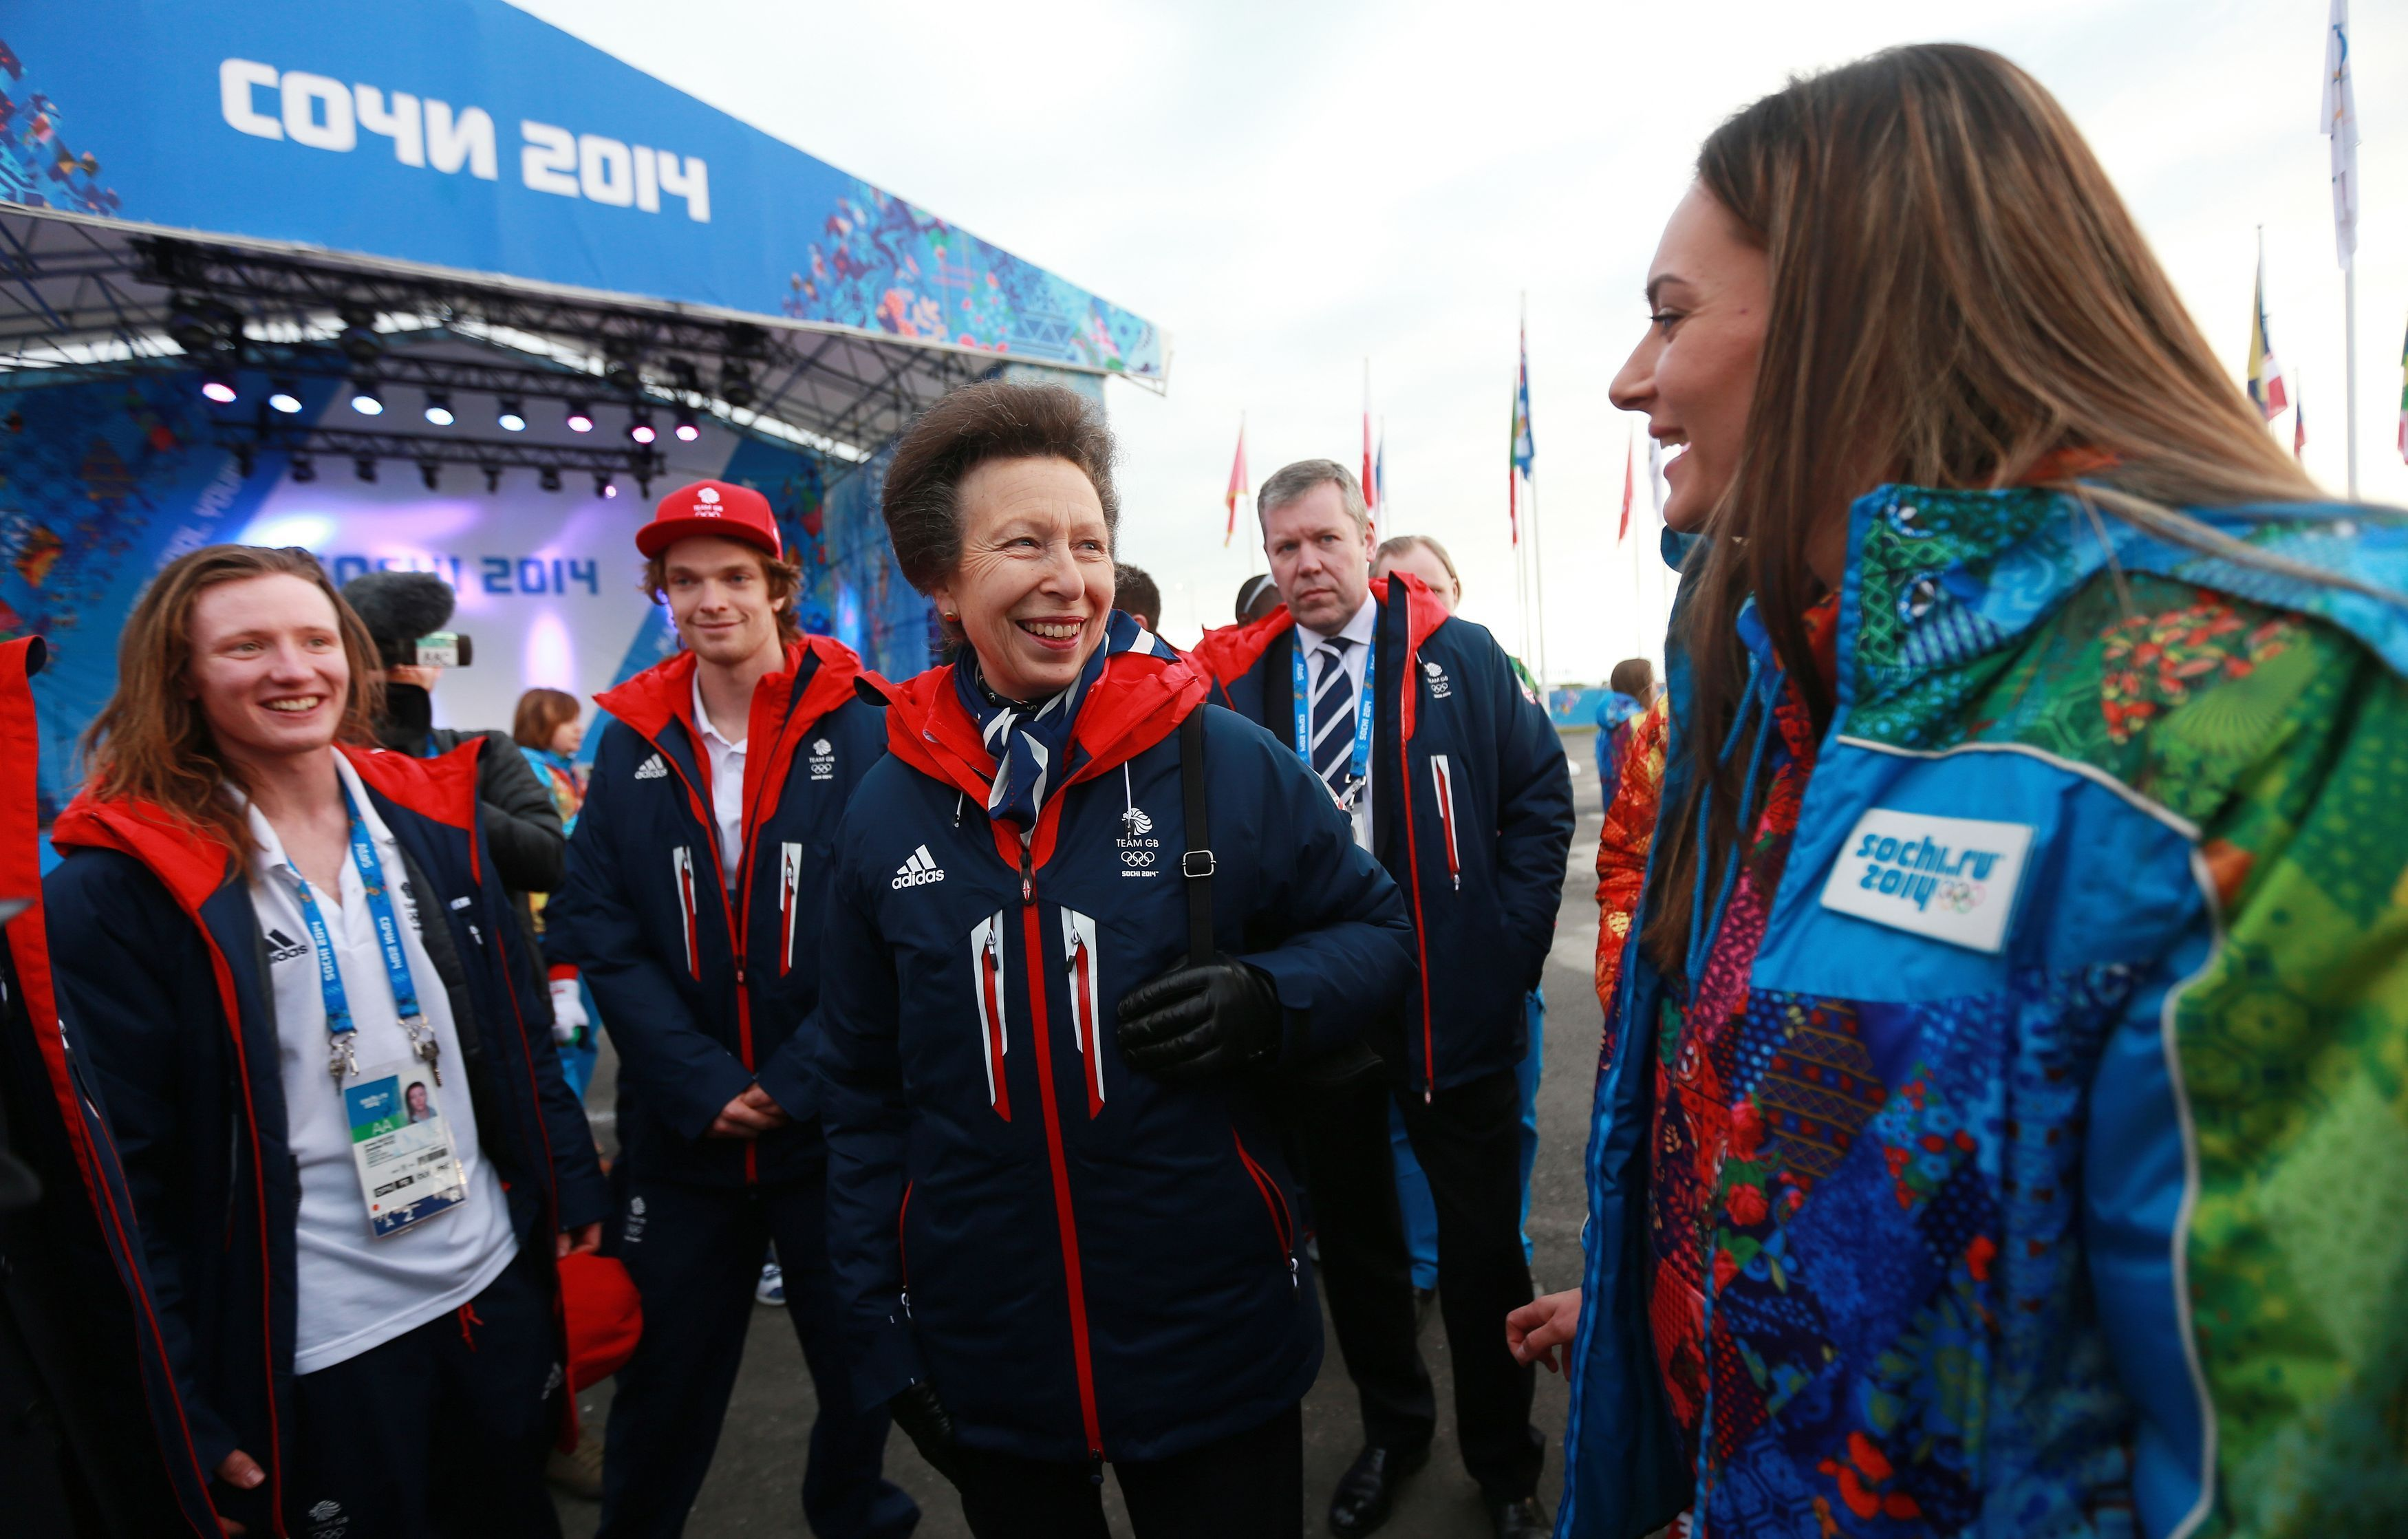 Princess Royal and the Olympics